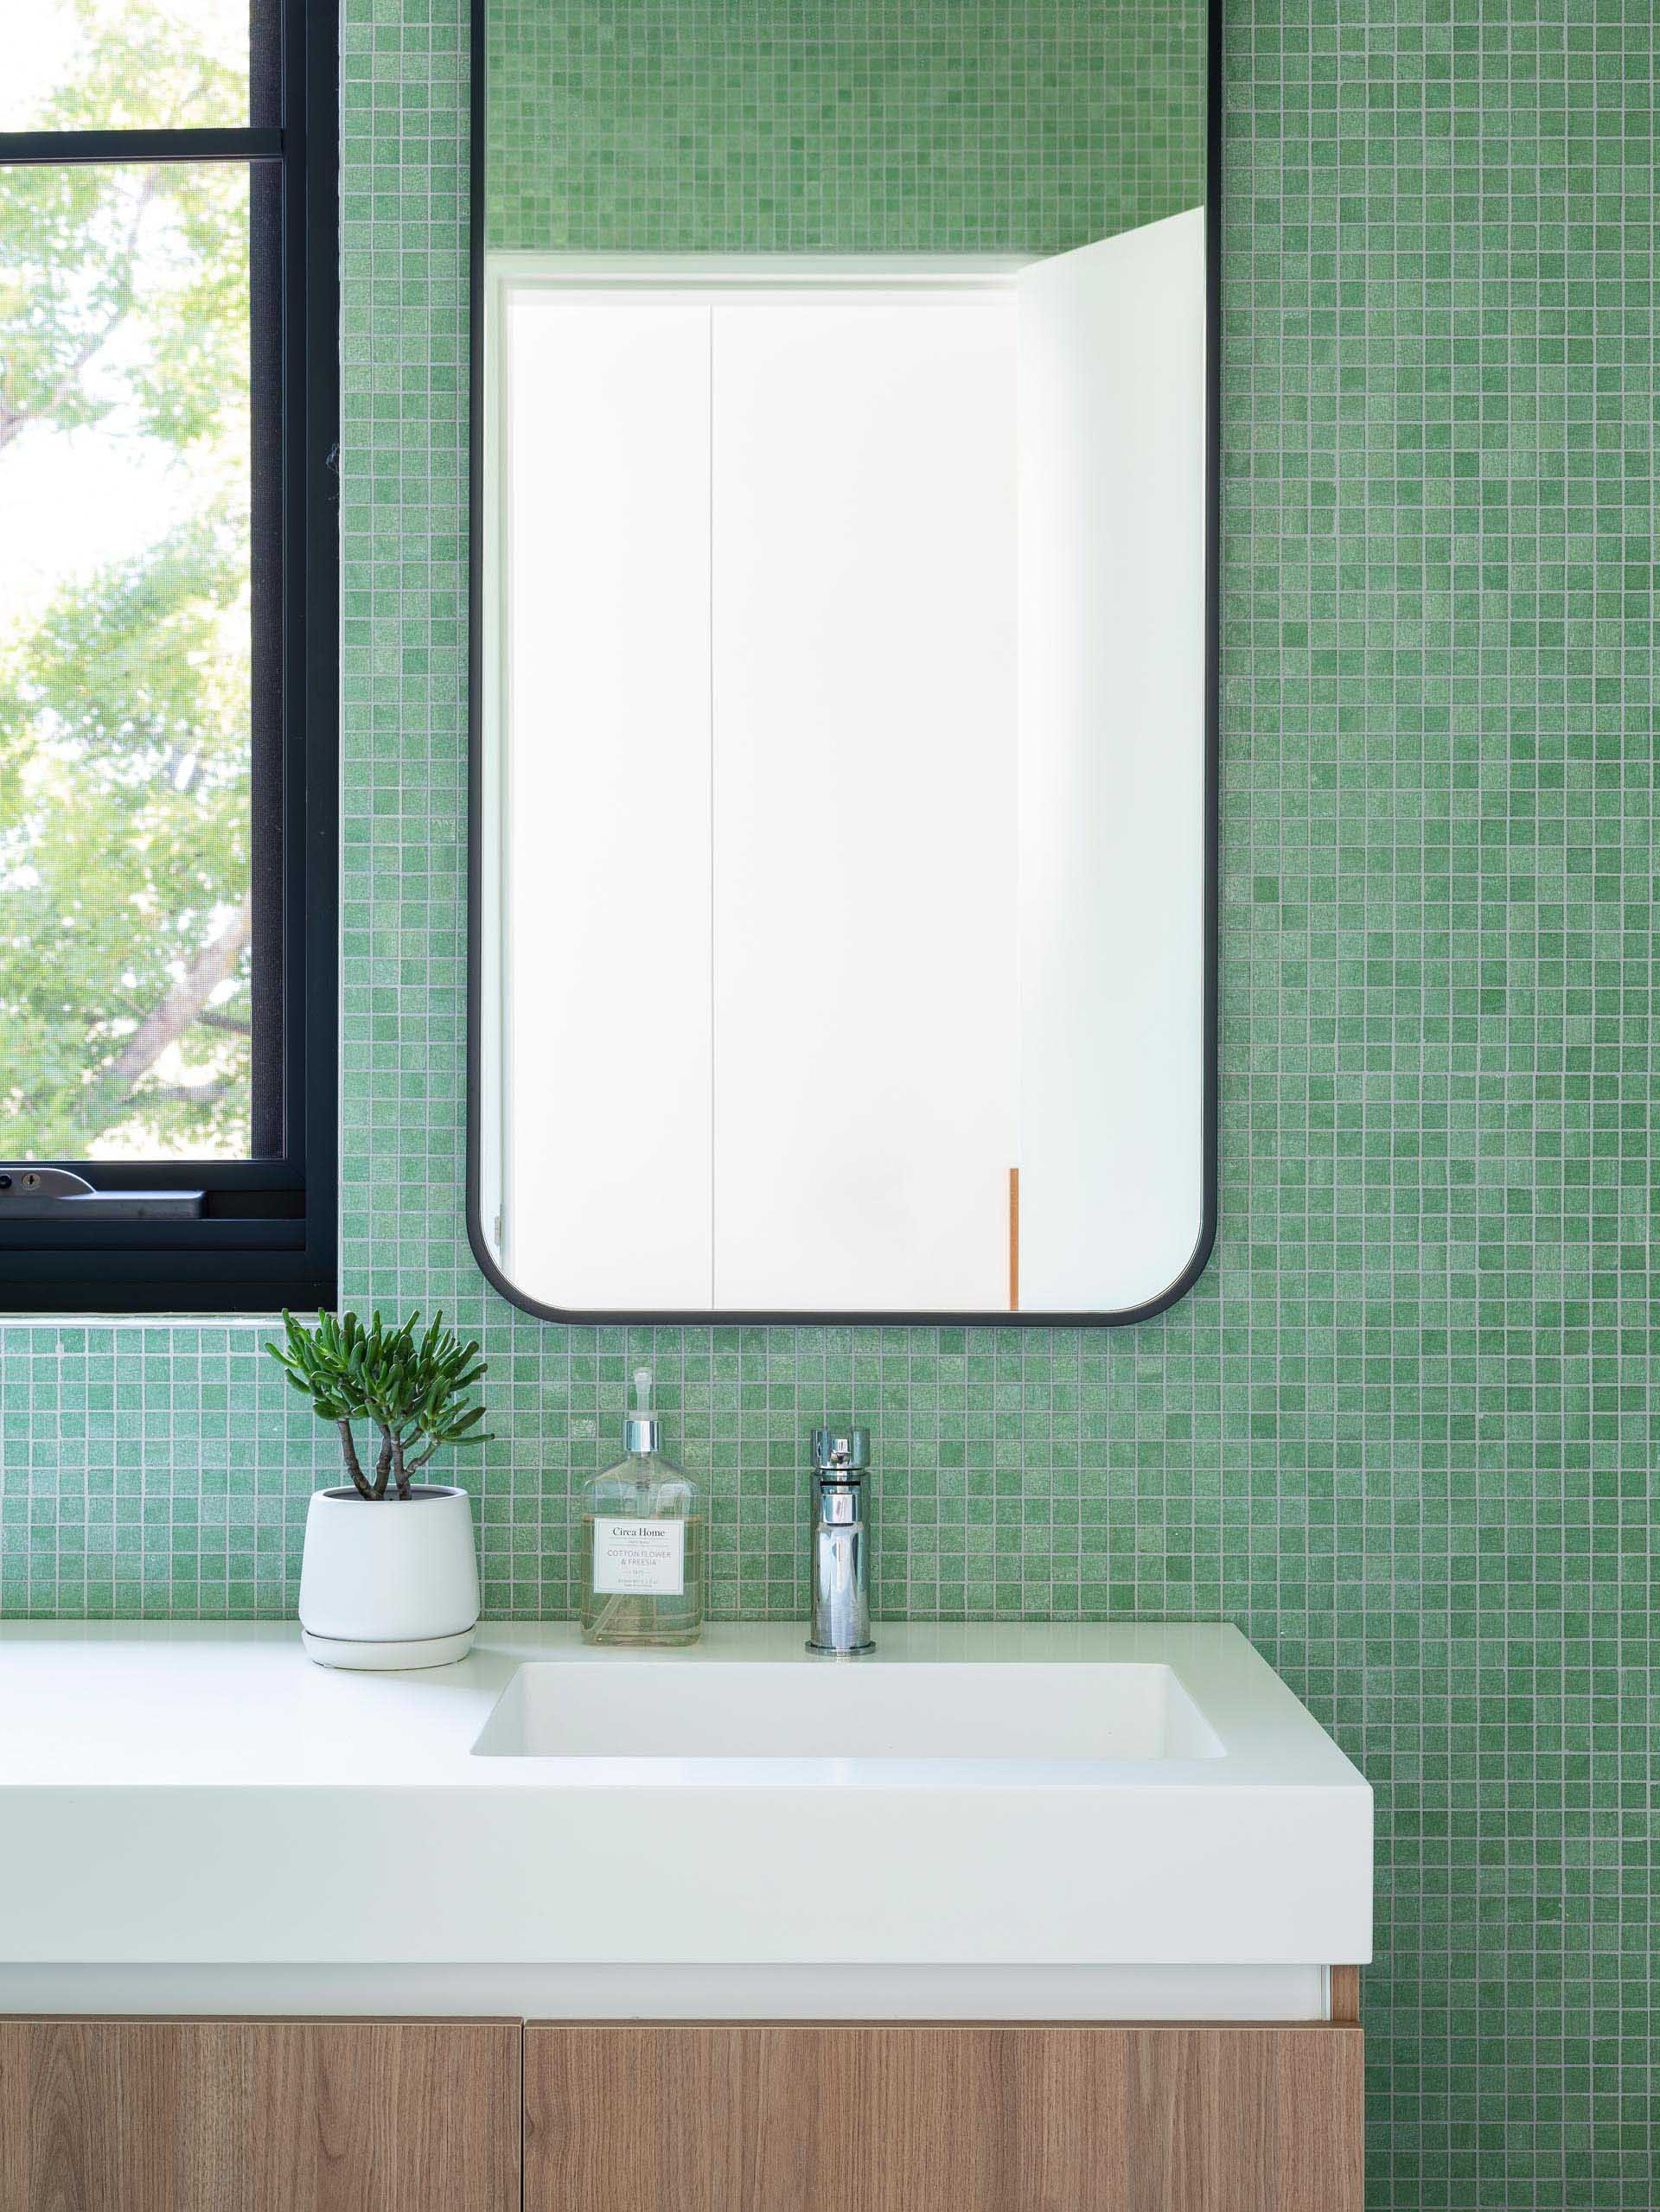 In this modern bathroom, small square green tiles cover the walls, while the black-framed mirror matches the window frame, and the white countertop with integrated sink rests atop a wood vanity.